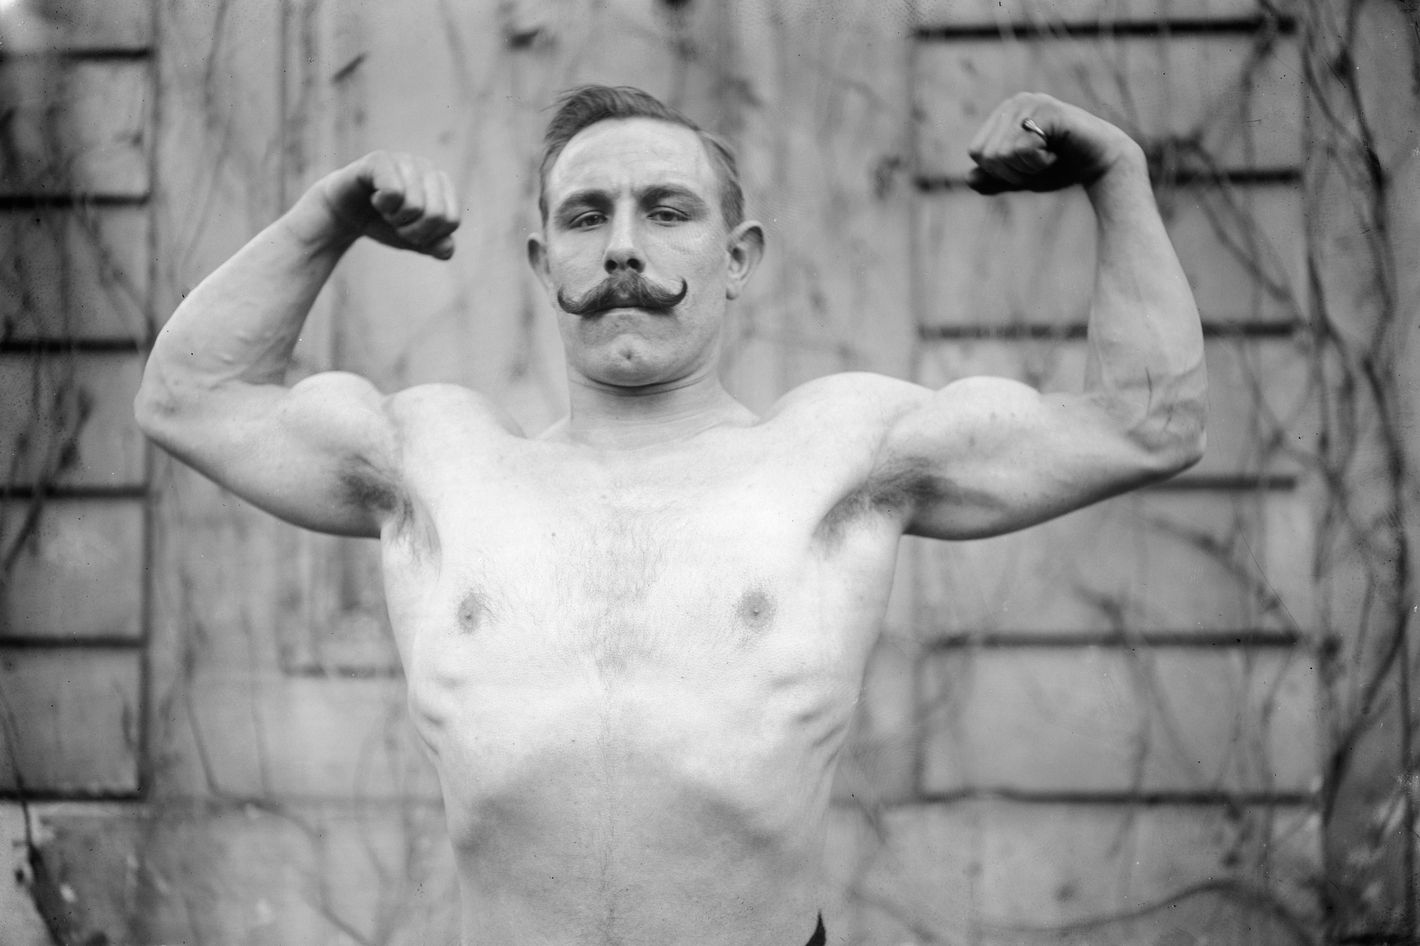 Lievs virile comeback with muscular lane